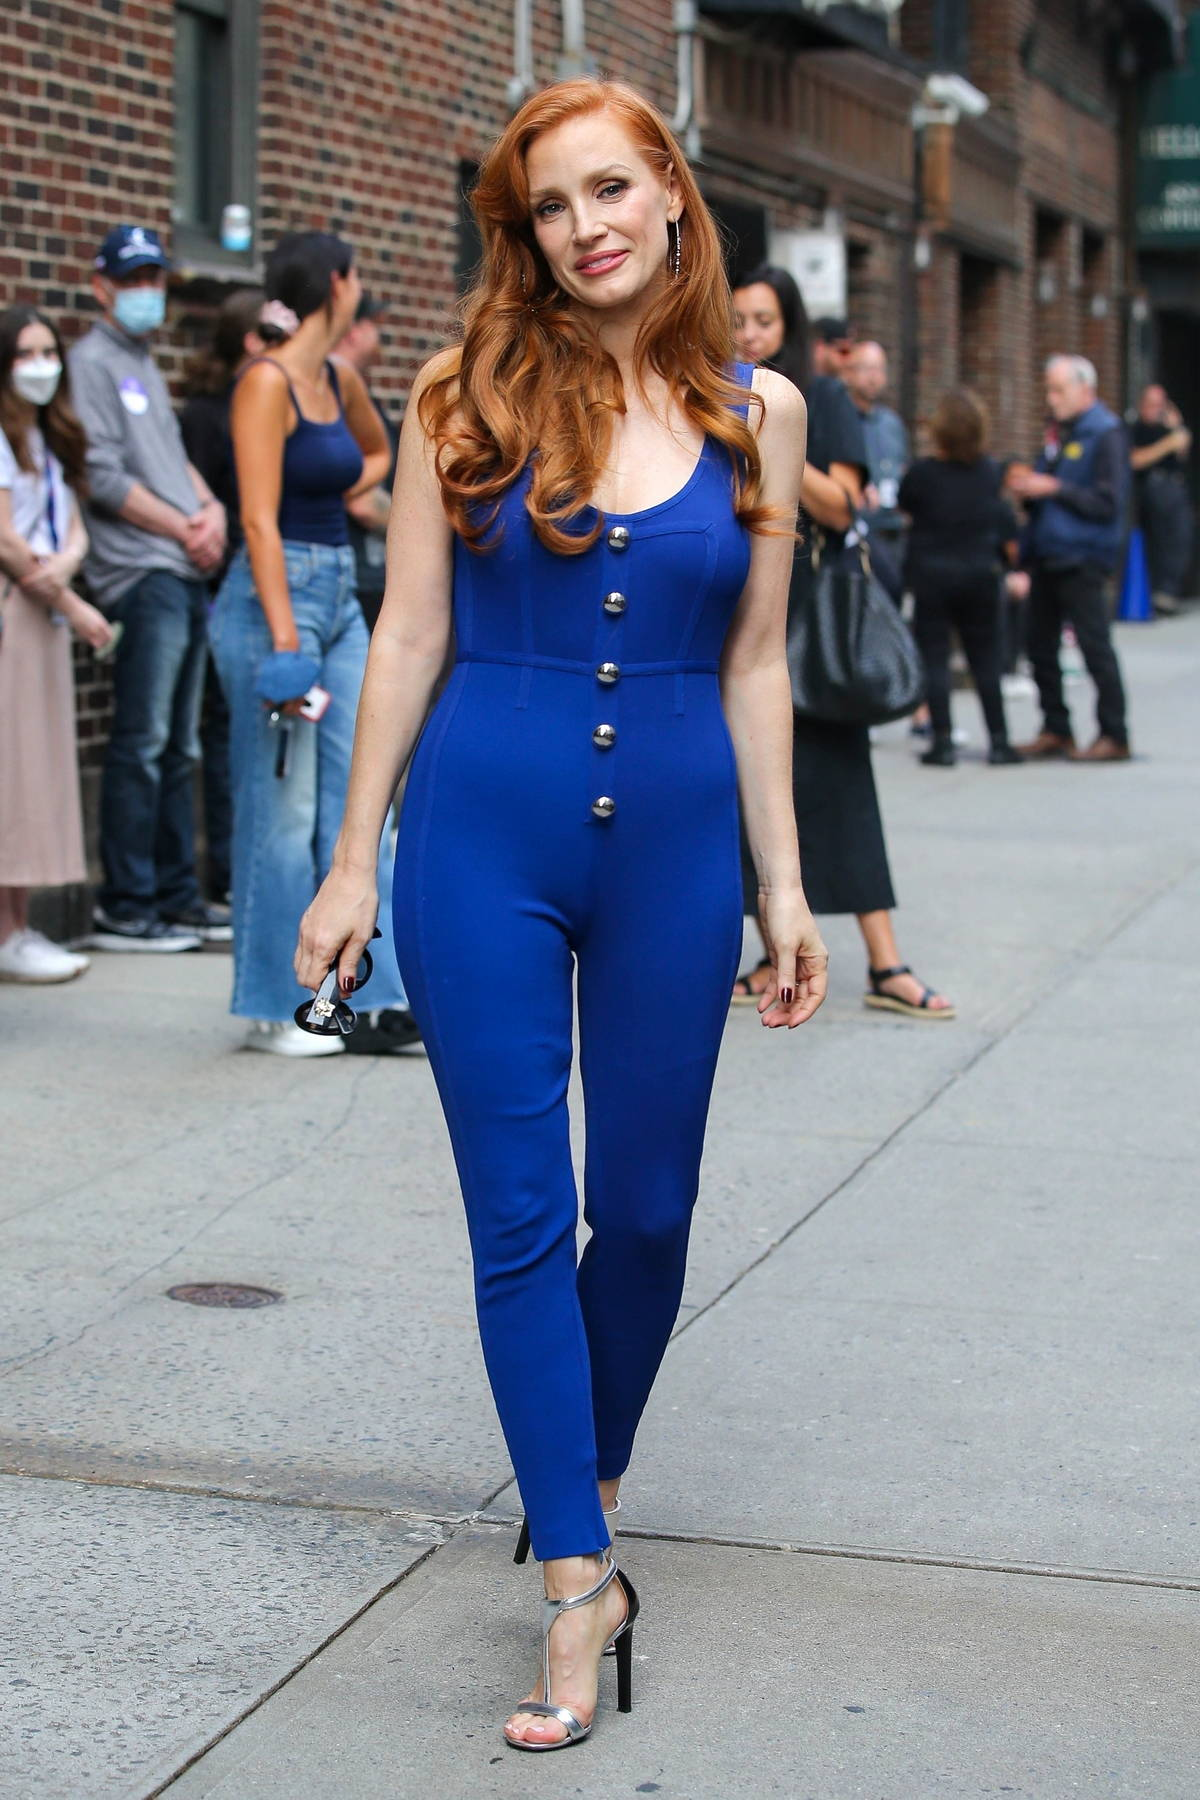 Jessica Chastain looks stylish in a blue jumpsuit as she arrives at 'The Late Show With Stephen Colbert' in New York City